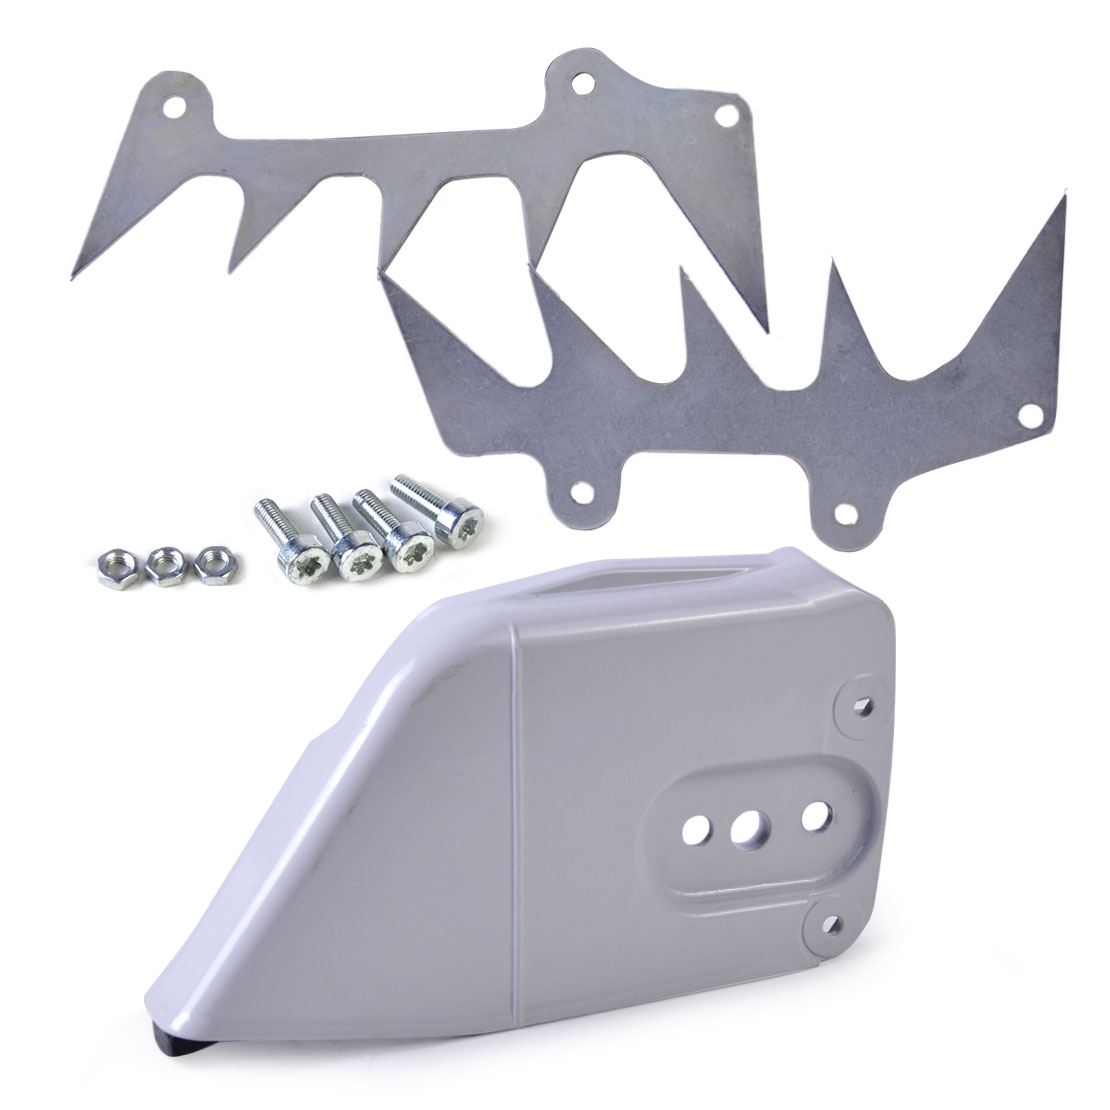 LETAOSK Chain Sprocket Clutch Cover Bumper Spike Felling Dog Fit for Stihl 044 046 064 066 MS440 MS460 MS650 MS660LETAOSK Chain Sprocket Clutch Cover Bumper Spike Felling Dog Fit for Stihl 044 046 064 066 MS440 MS460 MS650 MS660